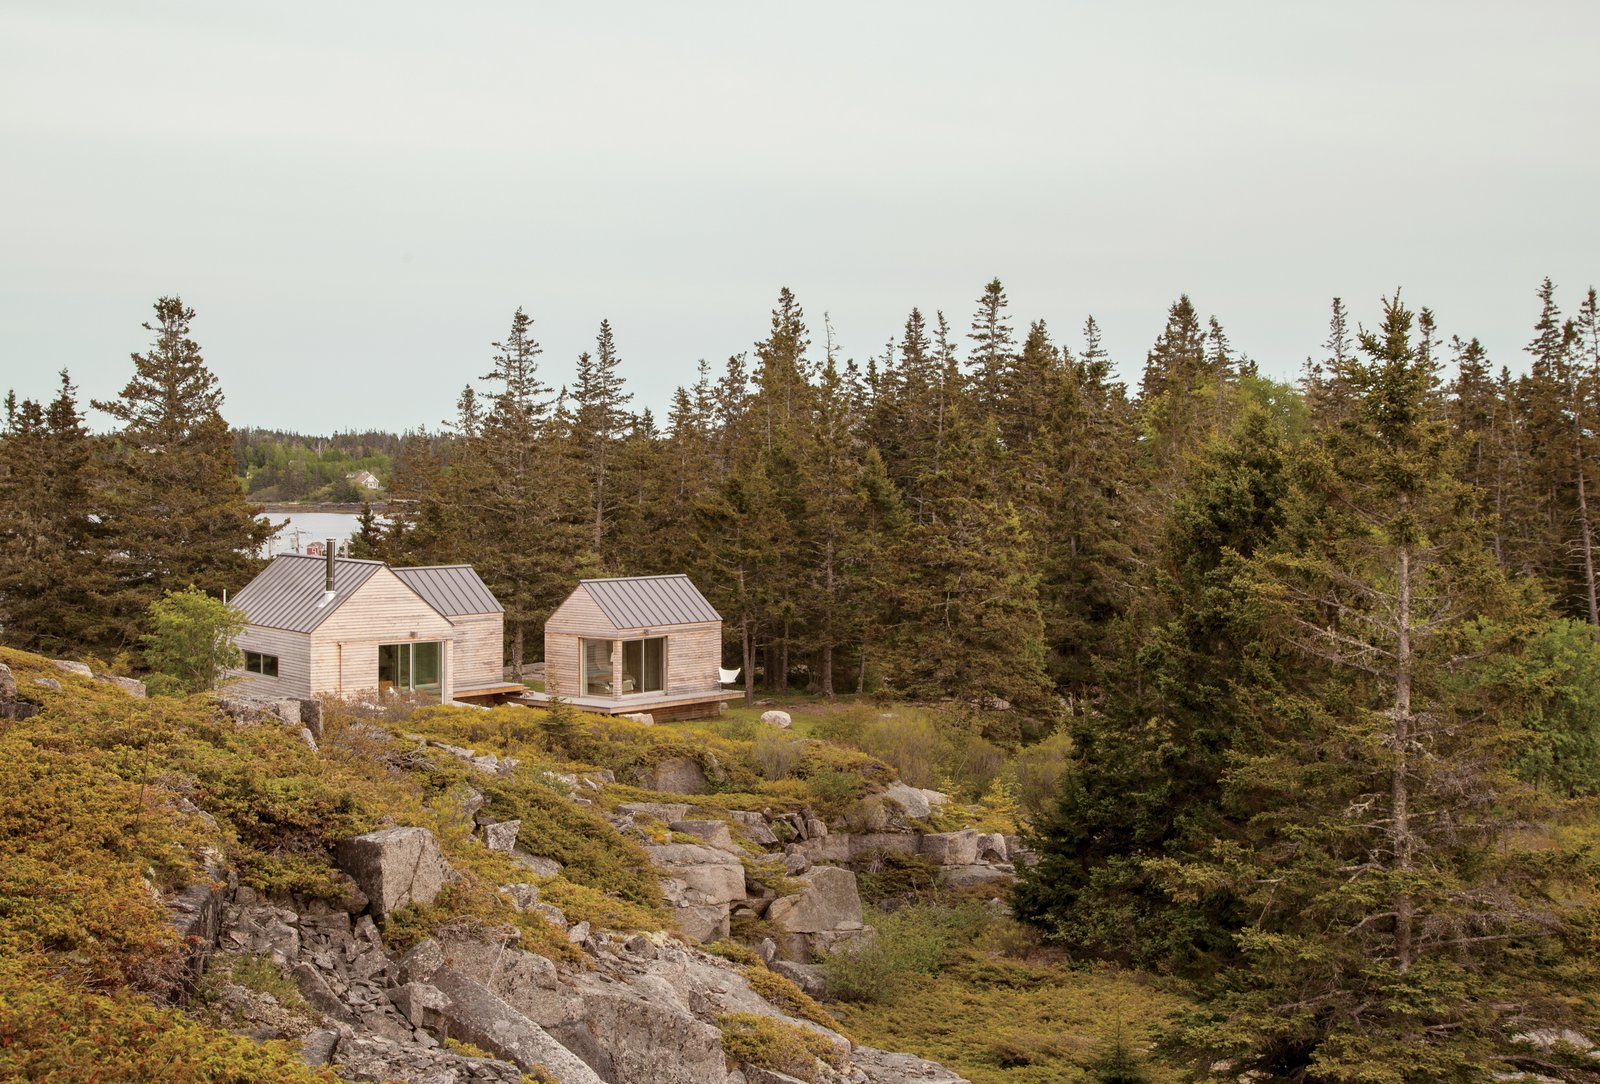 On a sloping site near a defunct rock quarry on the remote lobster-fishing island of Vinalhaven, Maine, a three-part summer home overlooks a framed view of Penobscot Bay. Working around the site's unique topography, design-build firm GO Logic created each structure at varying elevations. Tagged: Exterior, Cabin Building Type, Shingles Roof Material, and Wood Siding Material.  Photo 9 of 101 in 101 Best Modern Cabins from A Cluster of Cabins in a Former Quarry Makes a Simple Vacation Escape